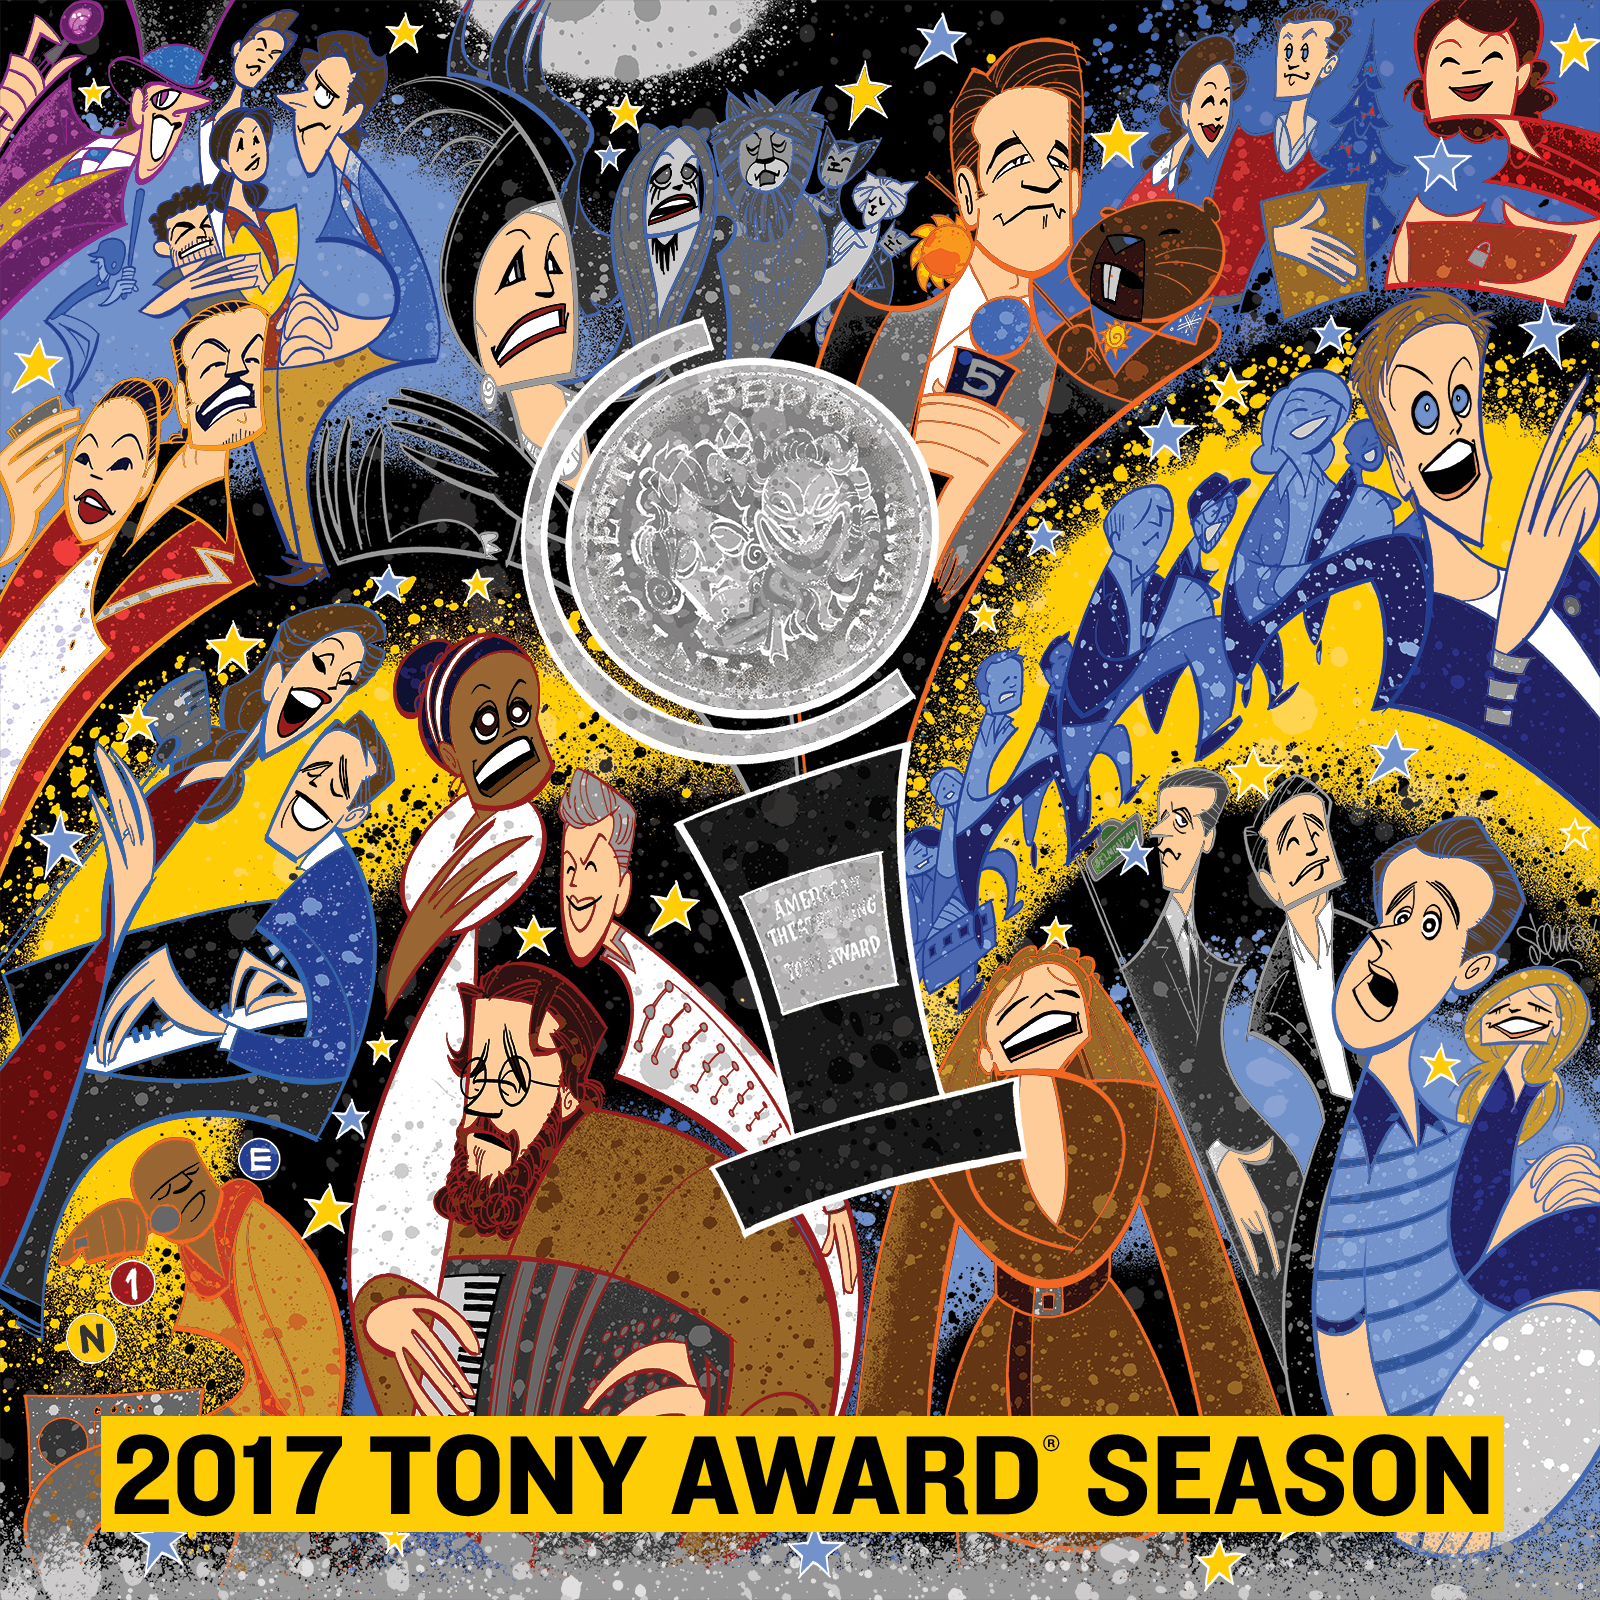 The 2017 Tony Award Season Album Broadway Cds Dvds